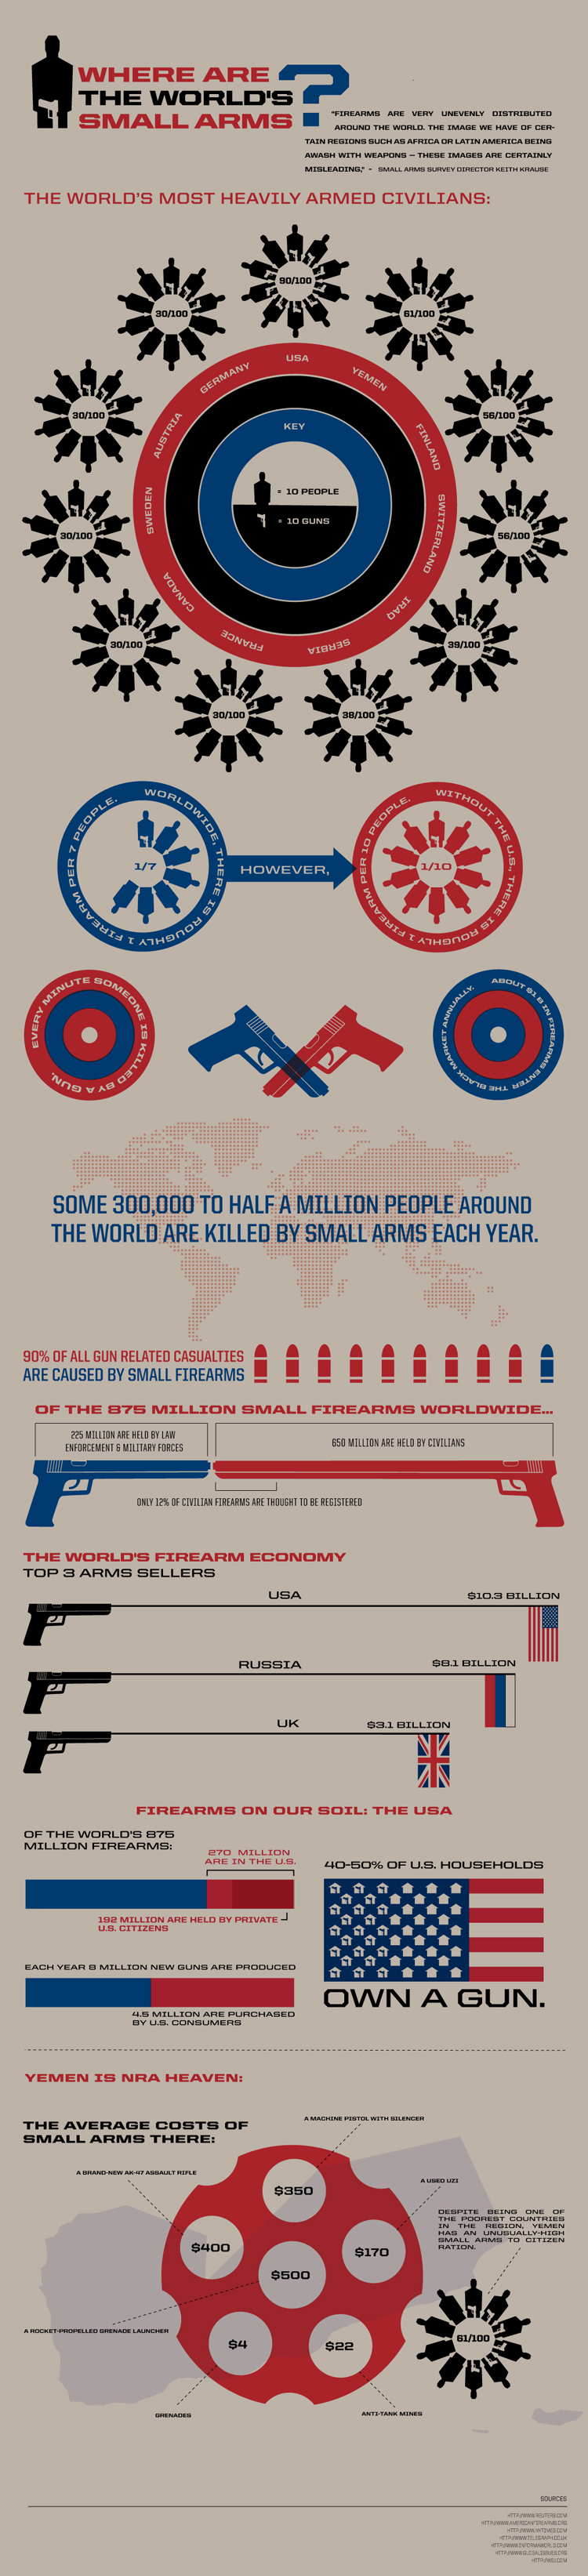 Guns-Across-the-World